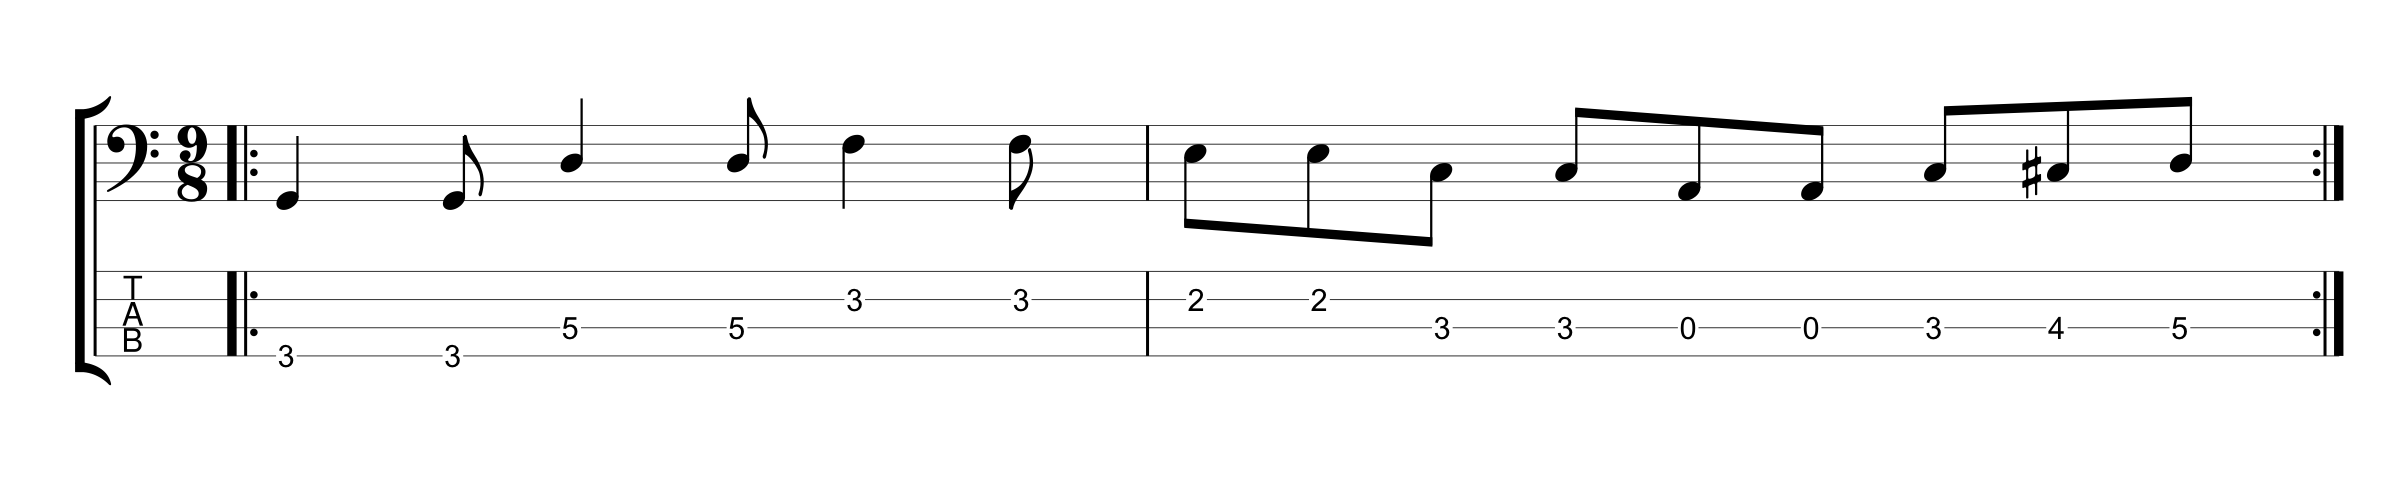 9/8 Time Signature Bass Groove Example 1